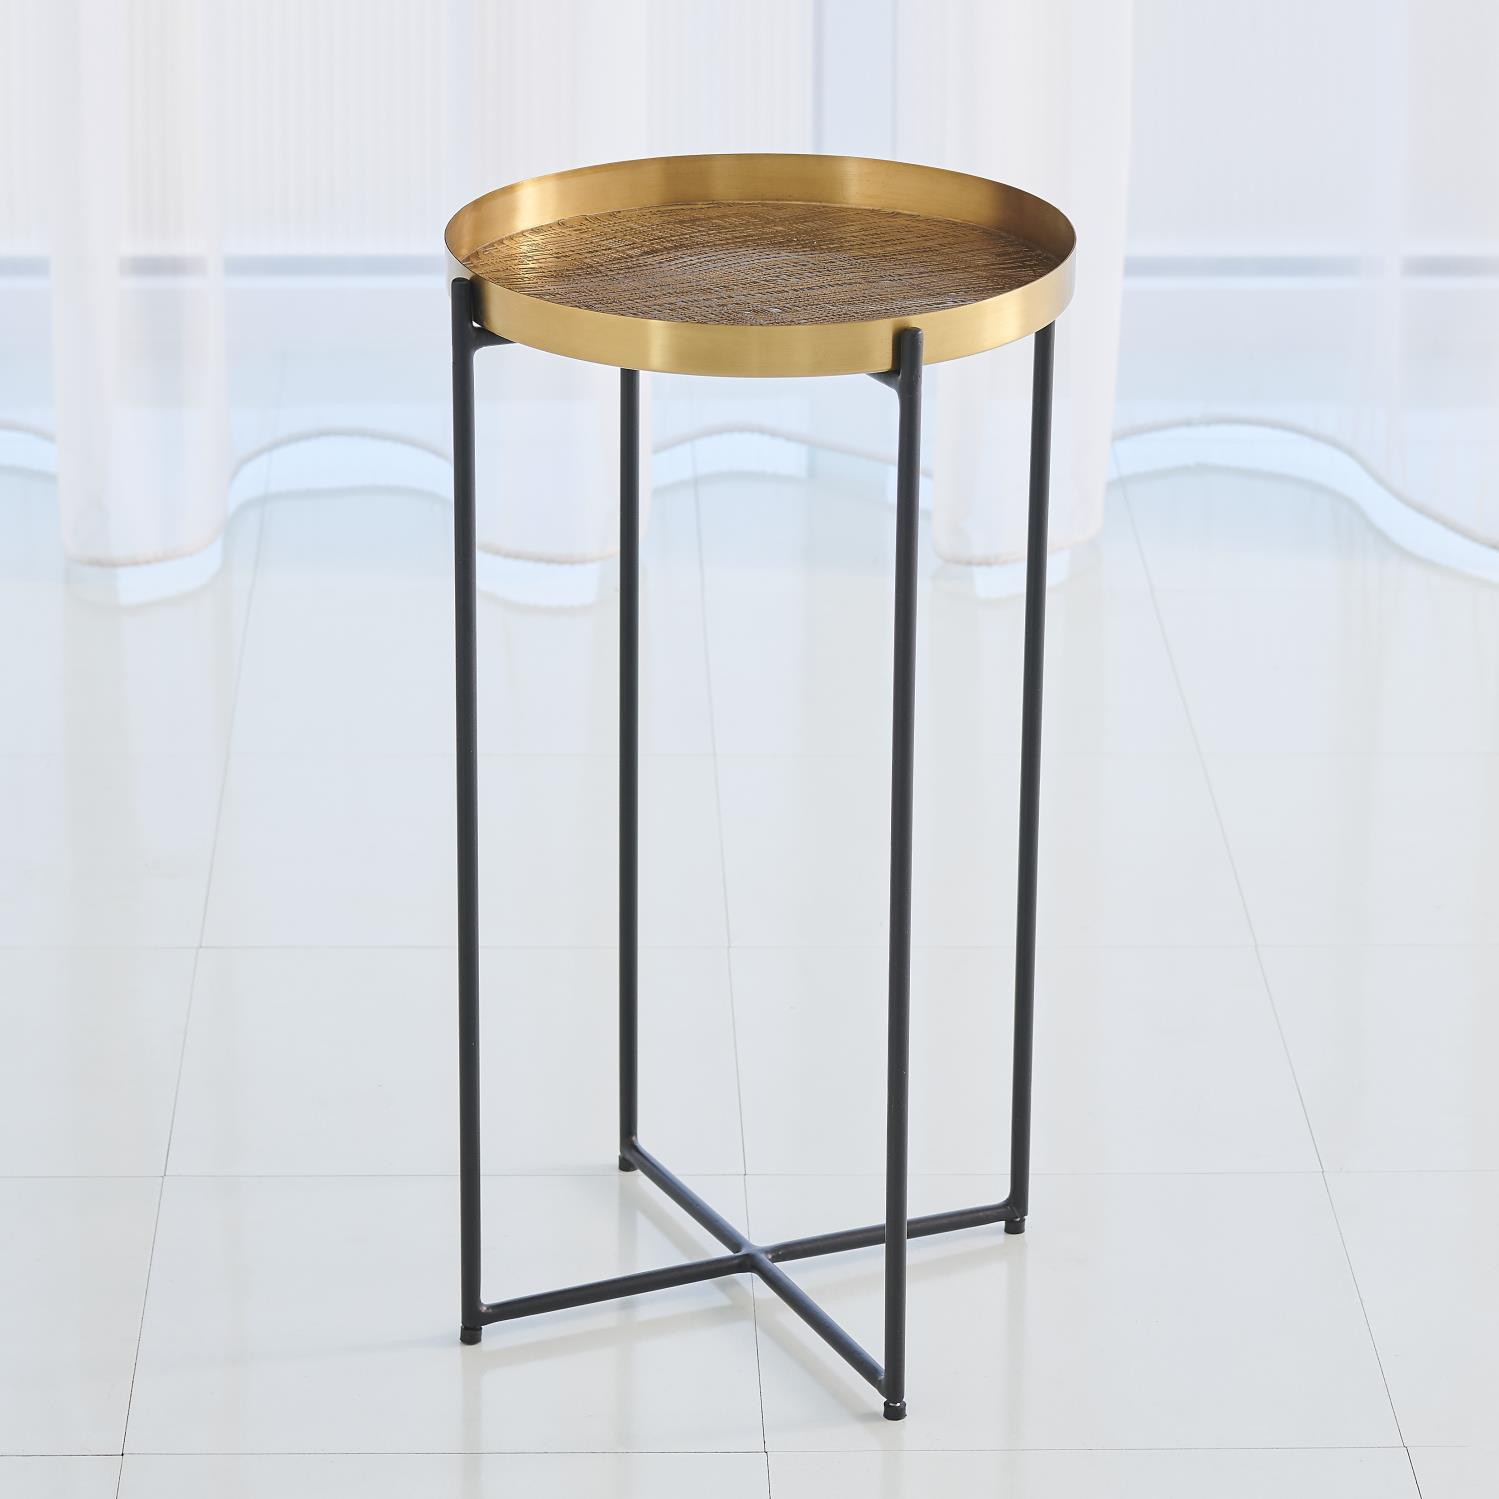 plaid etched accent table antique brass silver area rug floor ikea round mats peva tablecloth black side cabinet dale tiffany glass wall art small coffee sets bedroom wardrobes